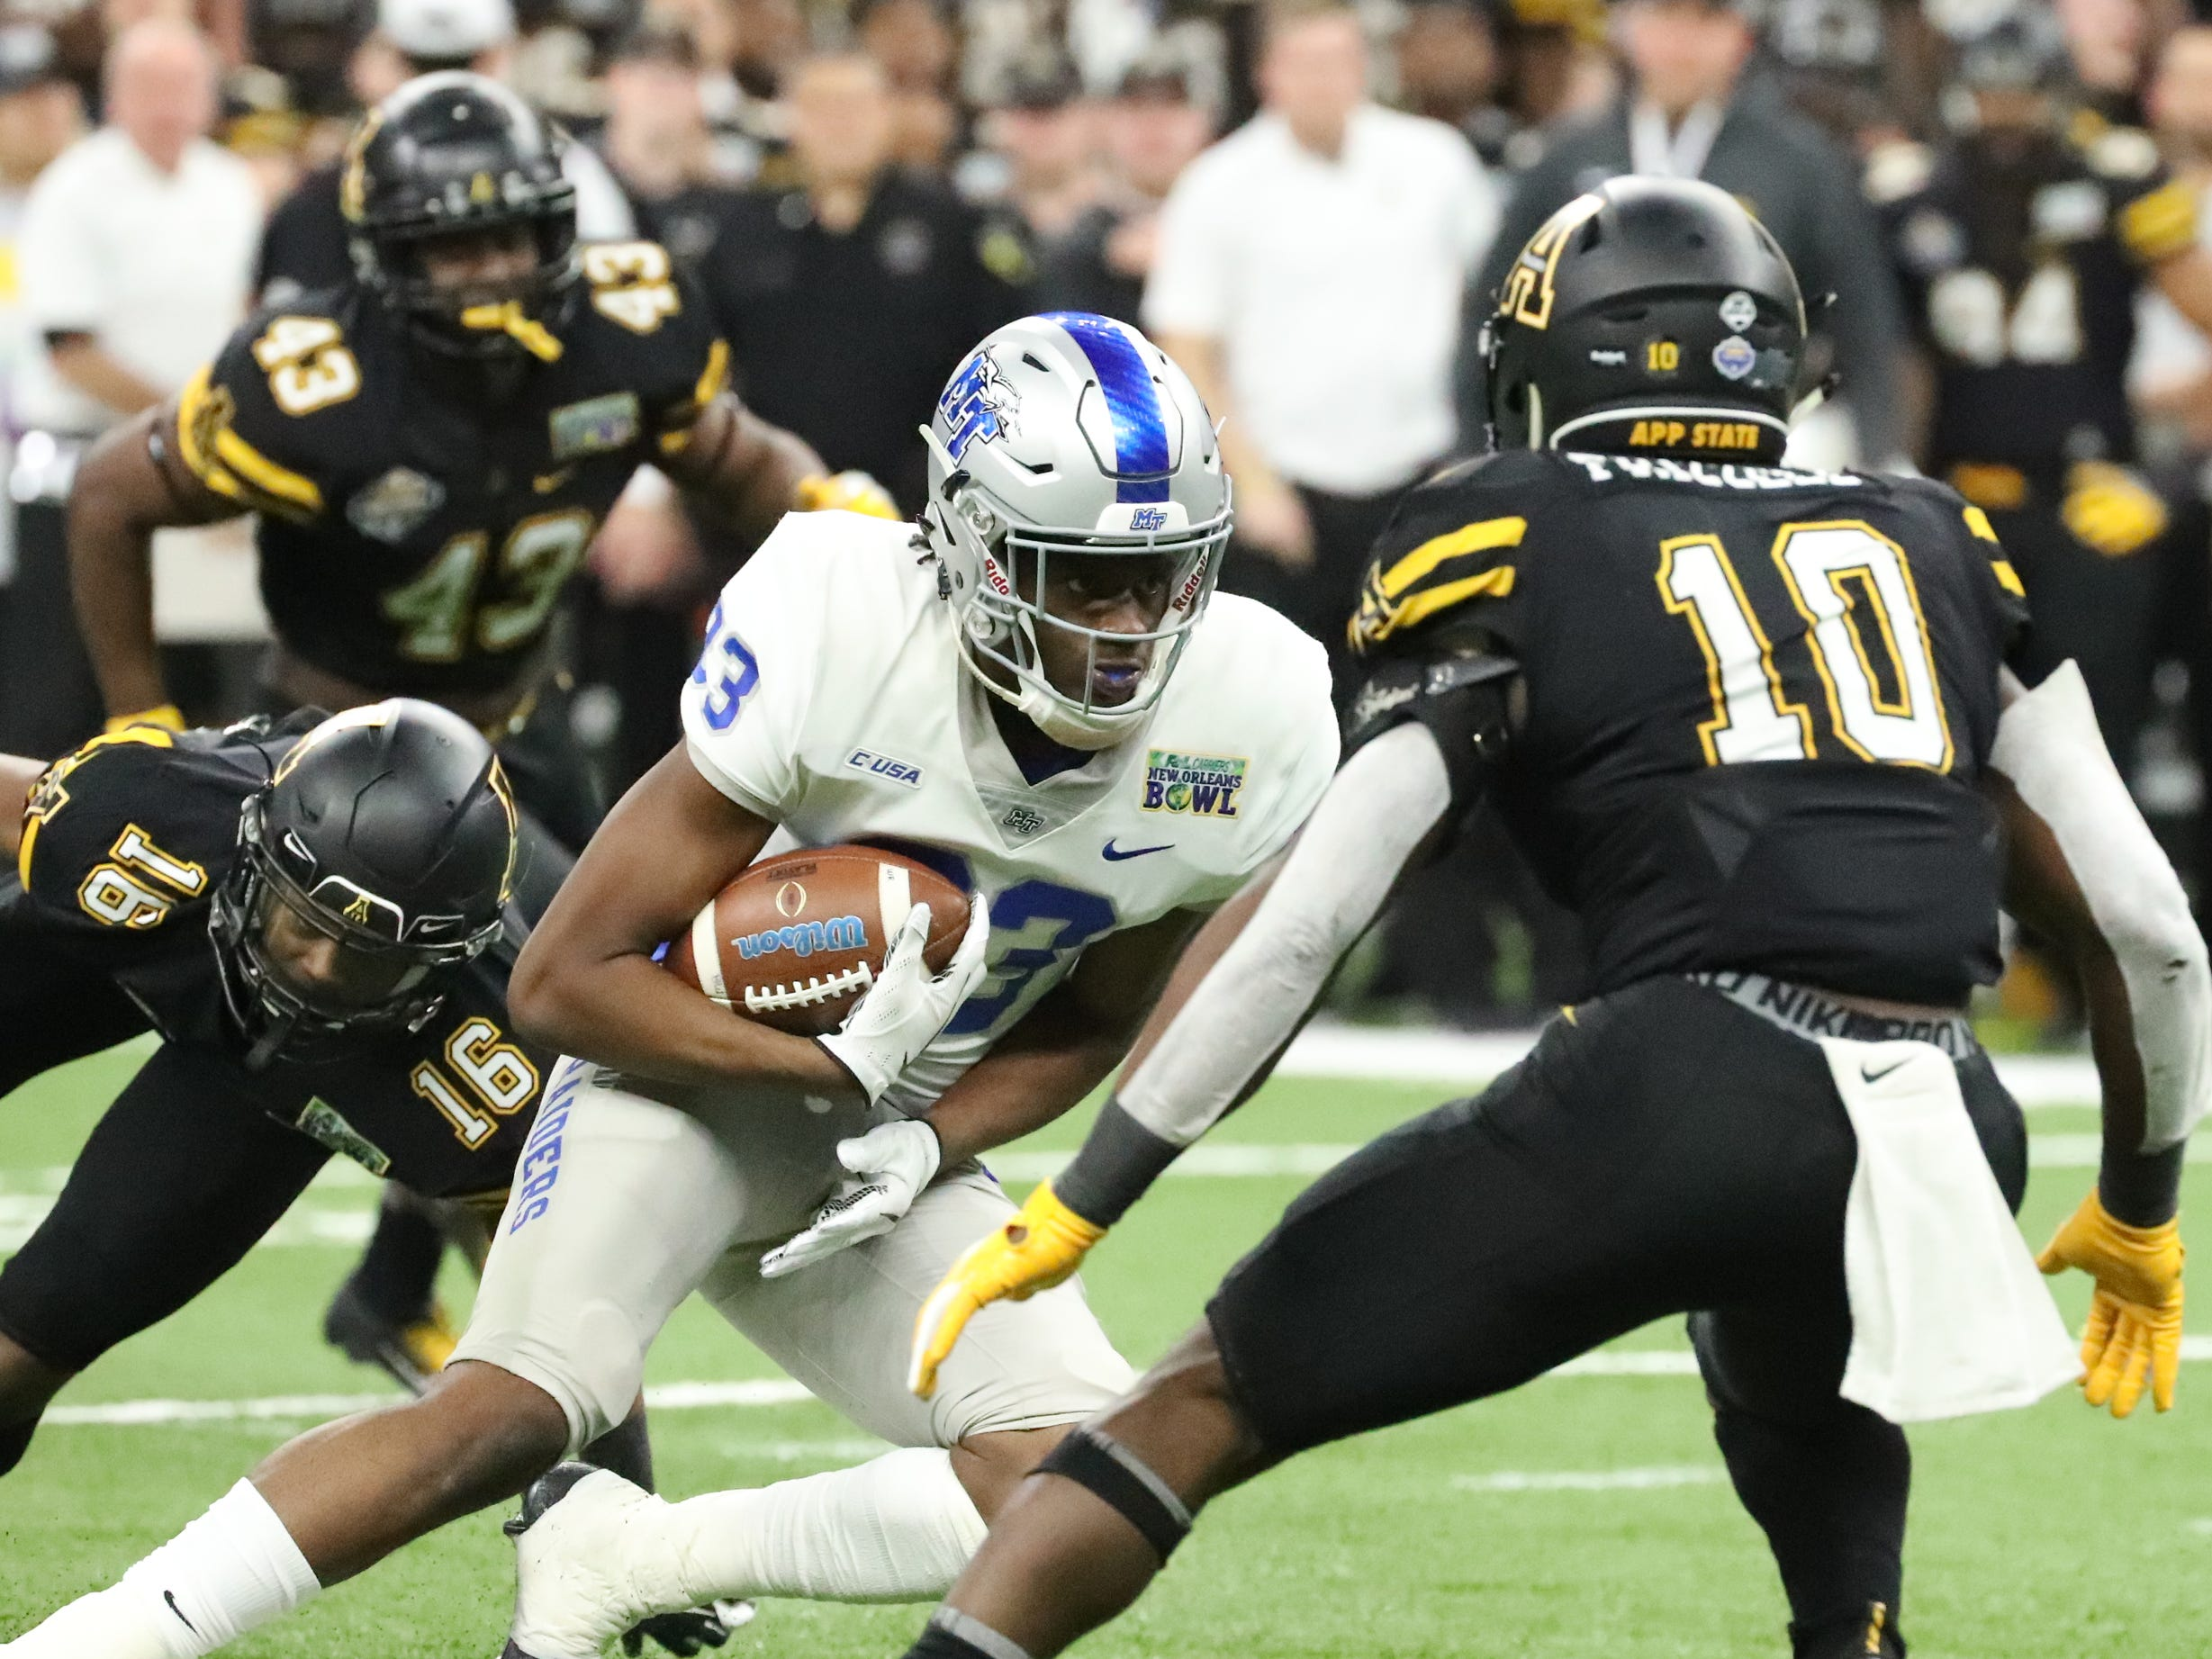 Middle Tennessee Blue Raiders defensive back Wesley Bush (23) runs the ball as Appalachian State Mountaineers linebacker Tim Frizzell (10) moves in for a tackle and Appalachian State Mountaineers defensive back Shaun Jolly (16) misses the tackle on Saturday, Dec. 15, 2018, during the New Orleans Bowl.